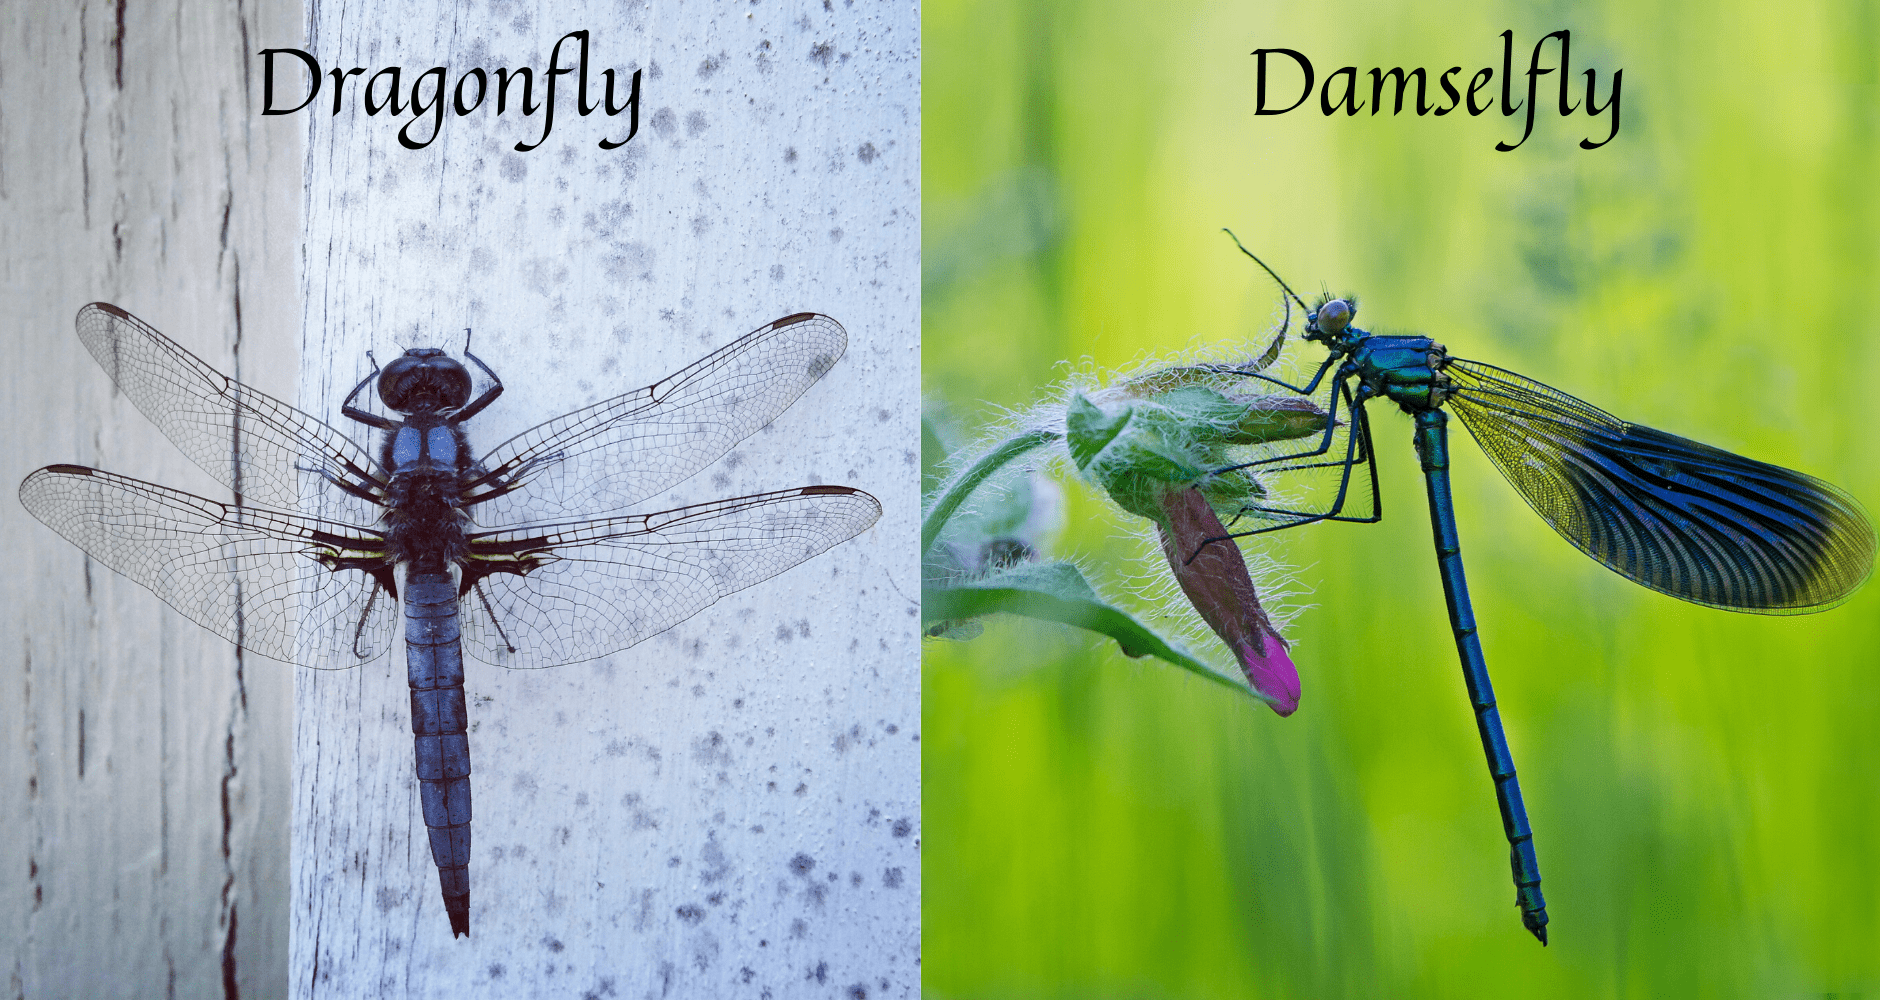 a dragonfly and damselfly side by side